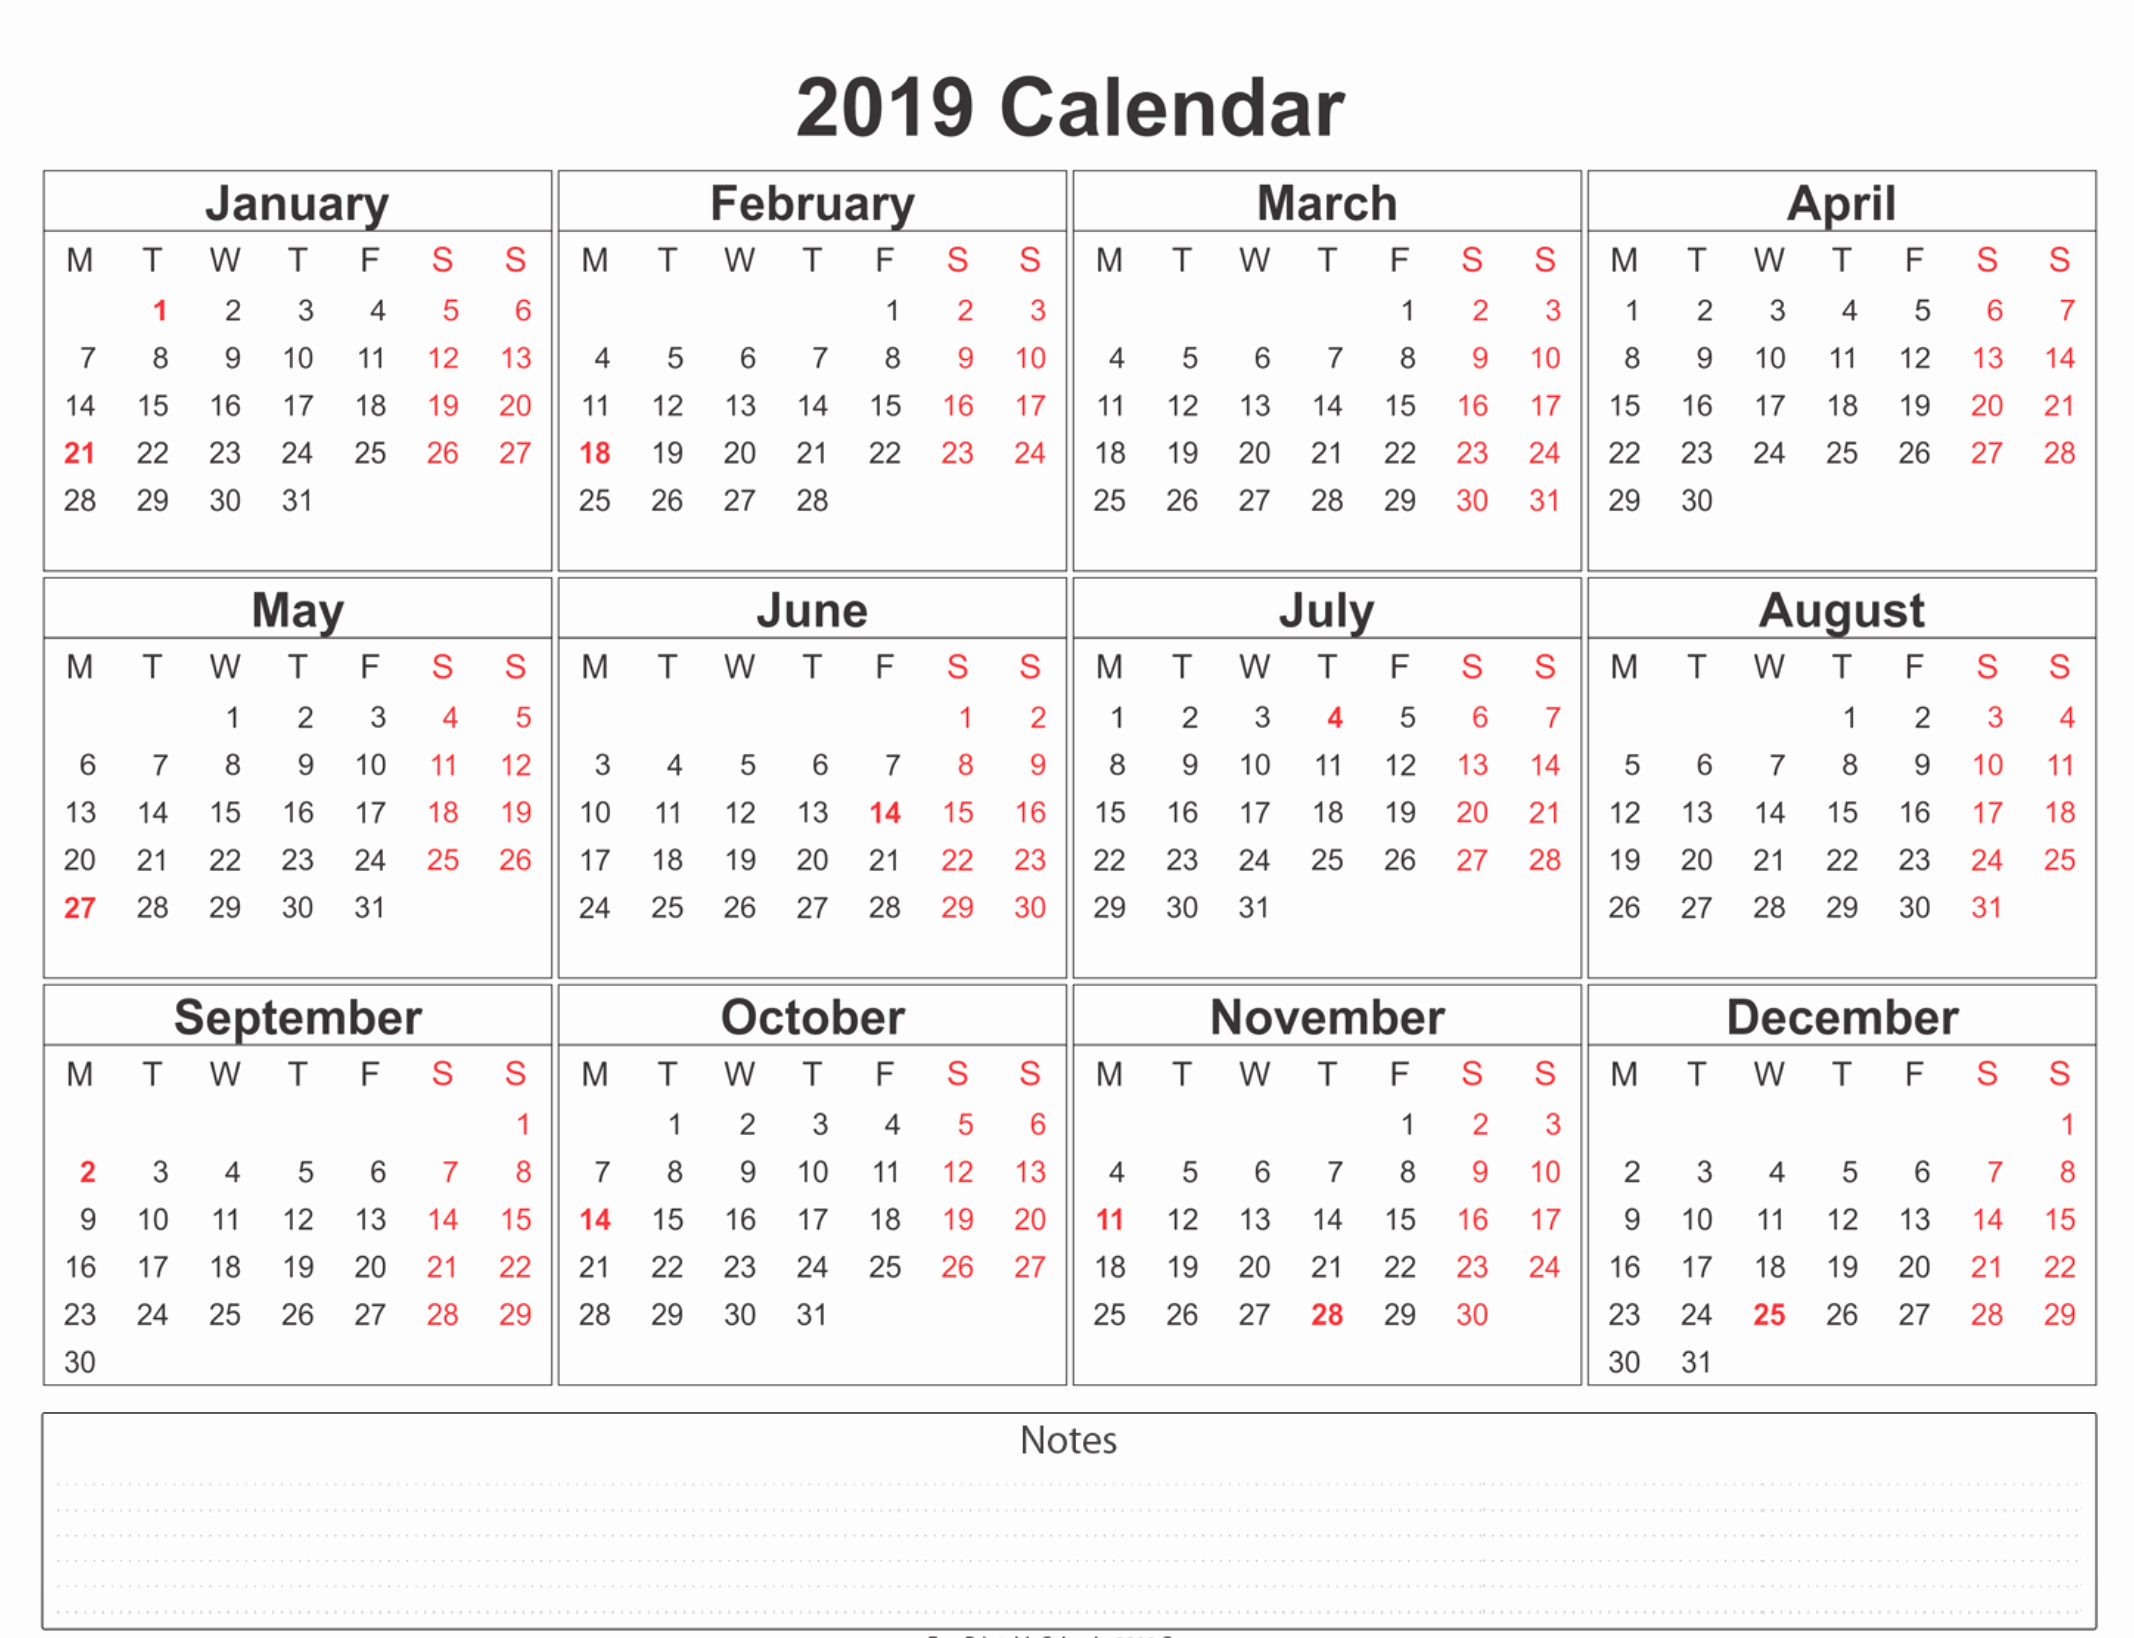 2019 Printable Calendar by Month Unique 2019 Calendar Amazonaws